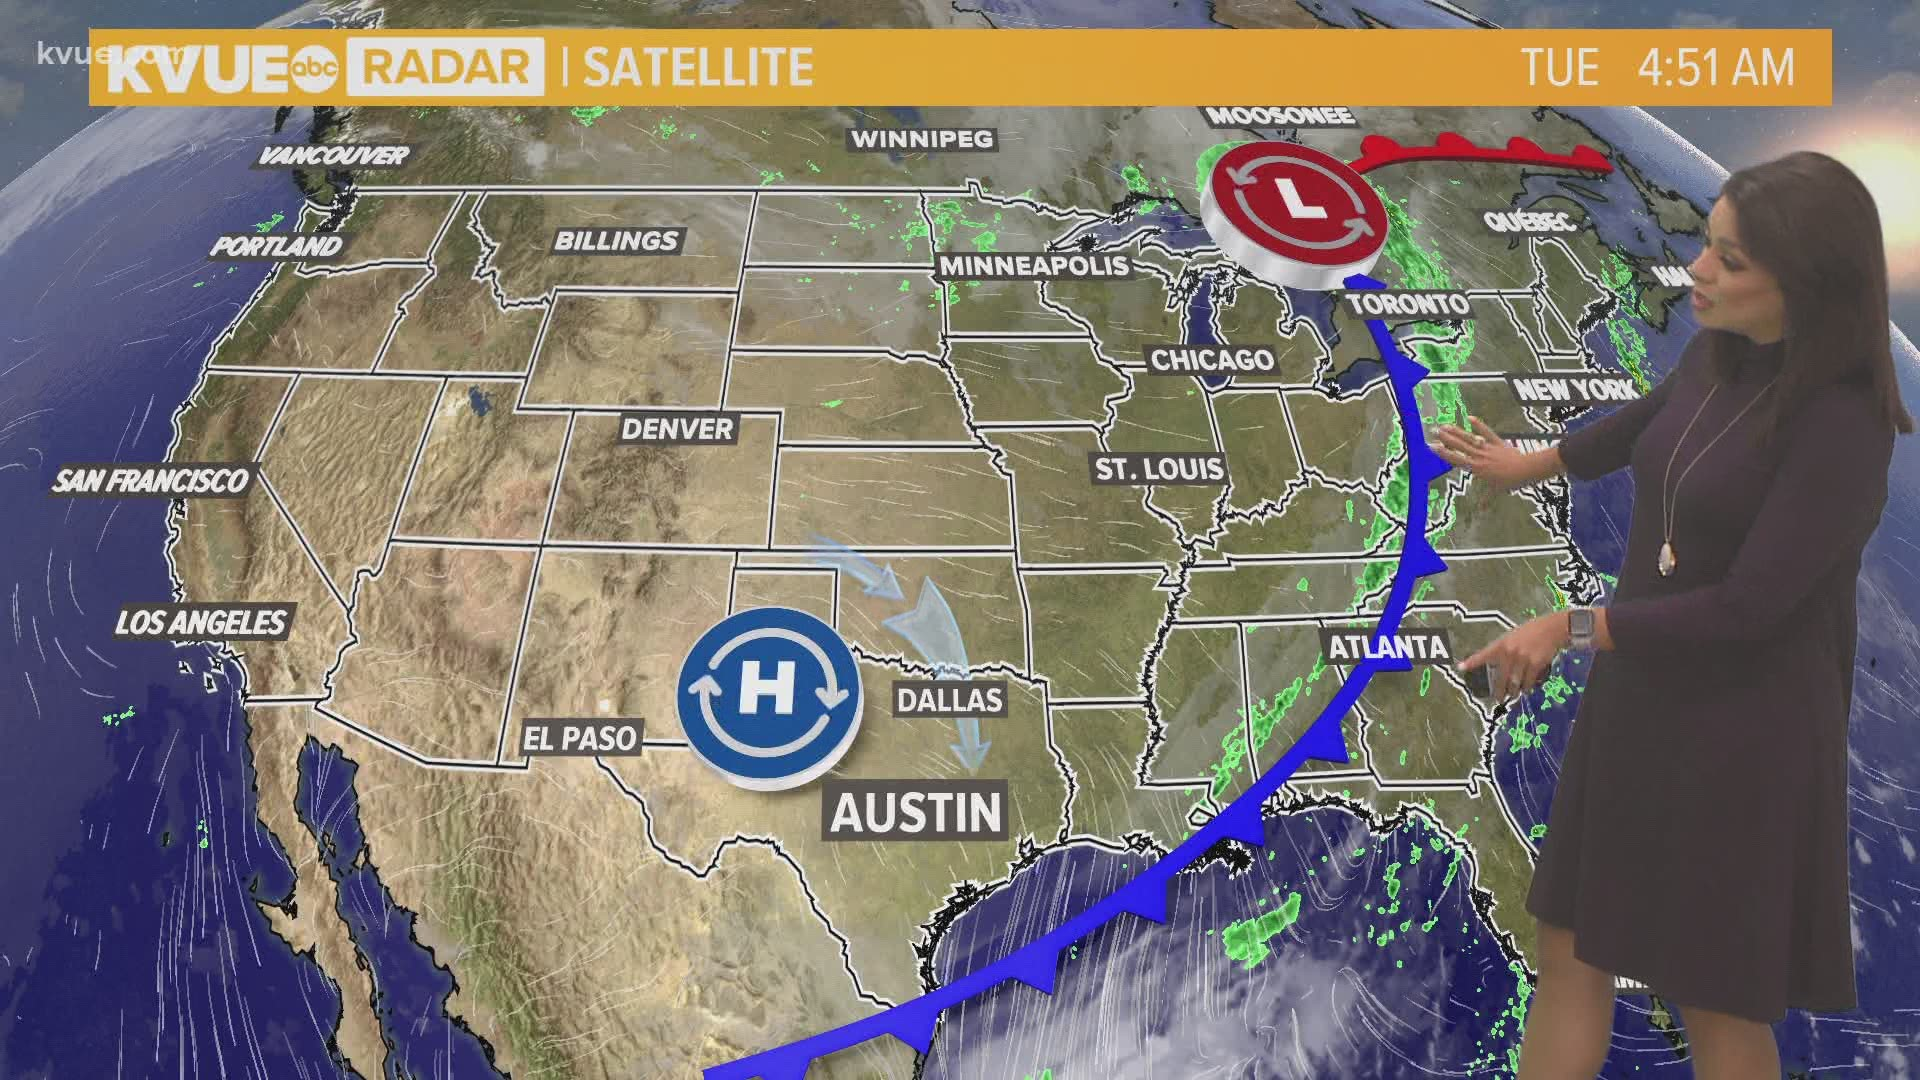 Weather Map Austin Texas Sweater weather is back in Central Texas | kvue.com